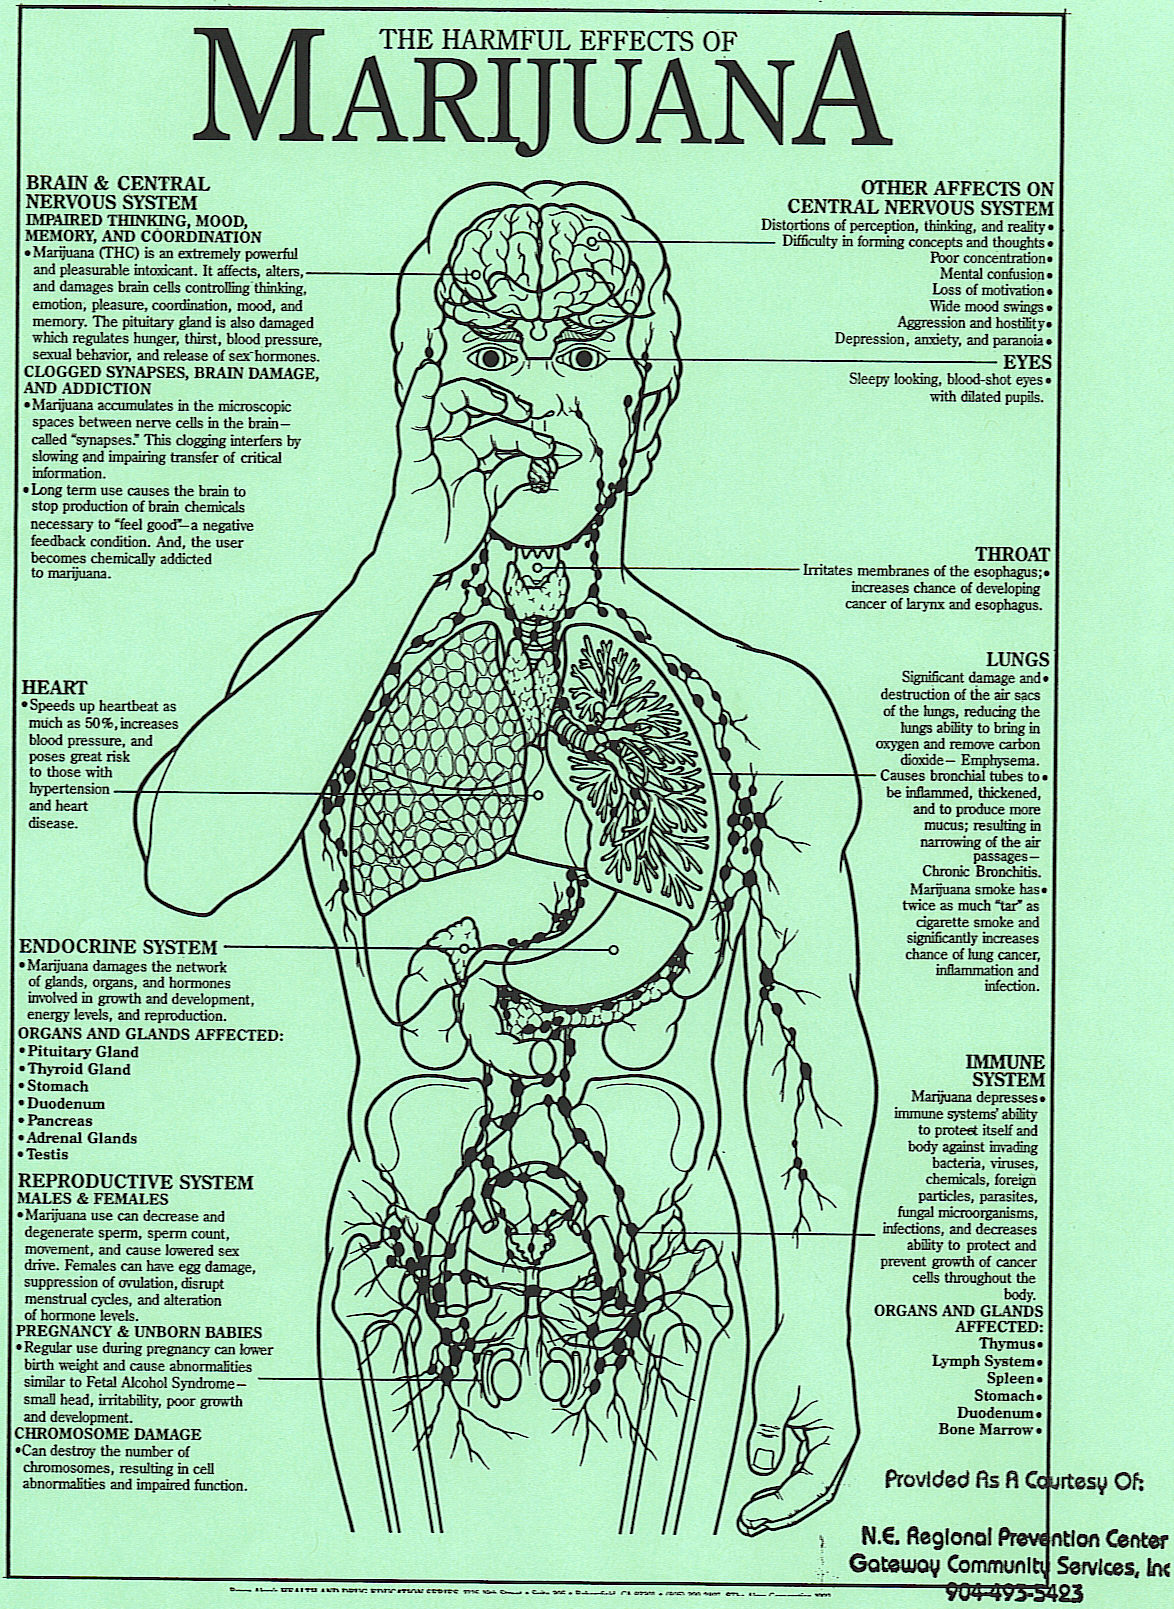 Effects of prolonged use of marijuana for various body systems